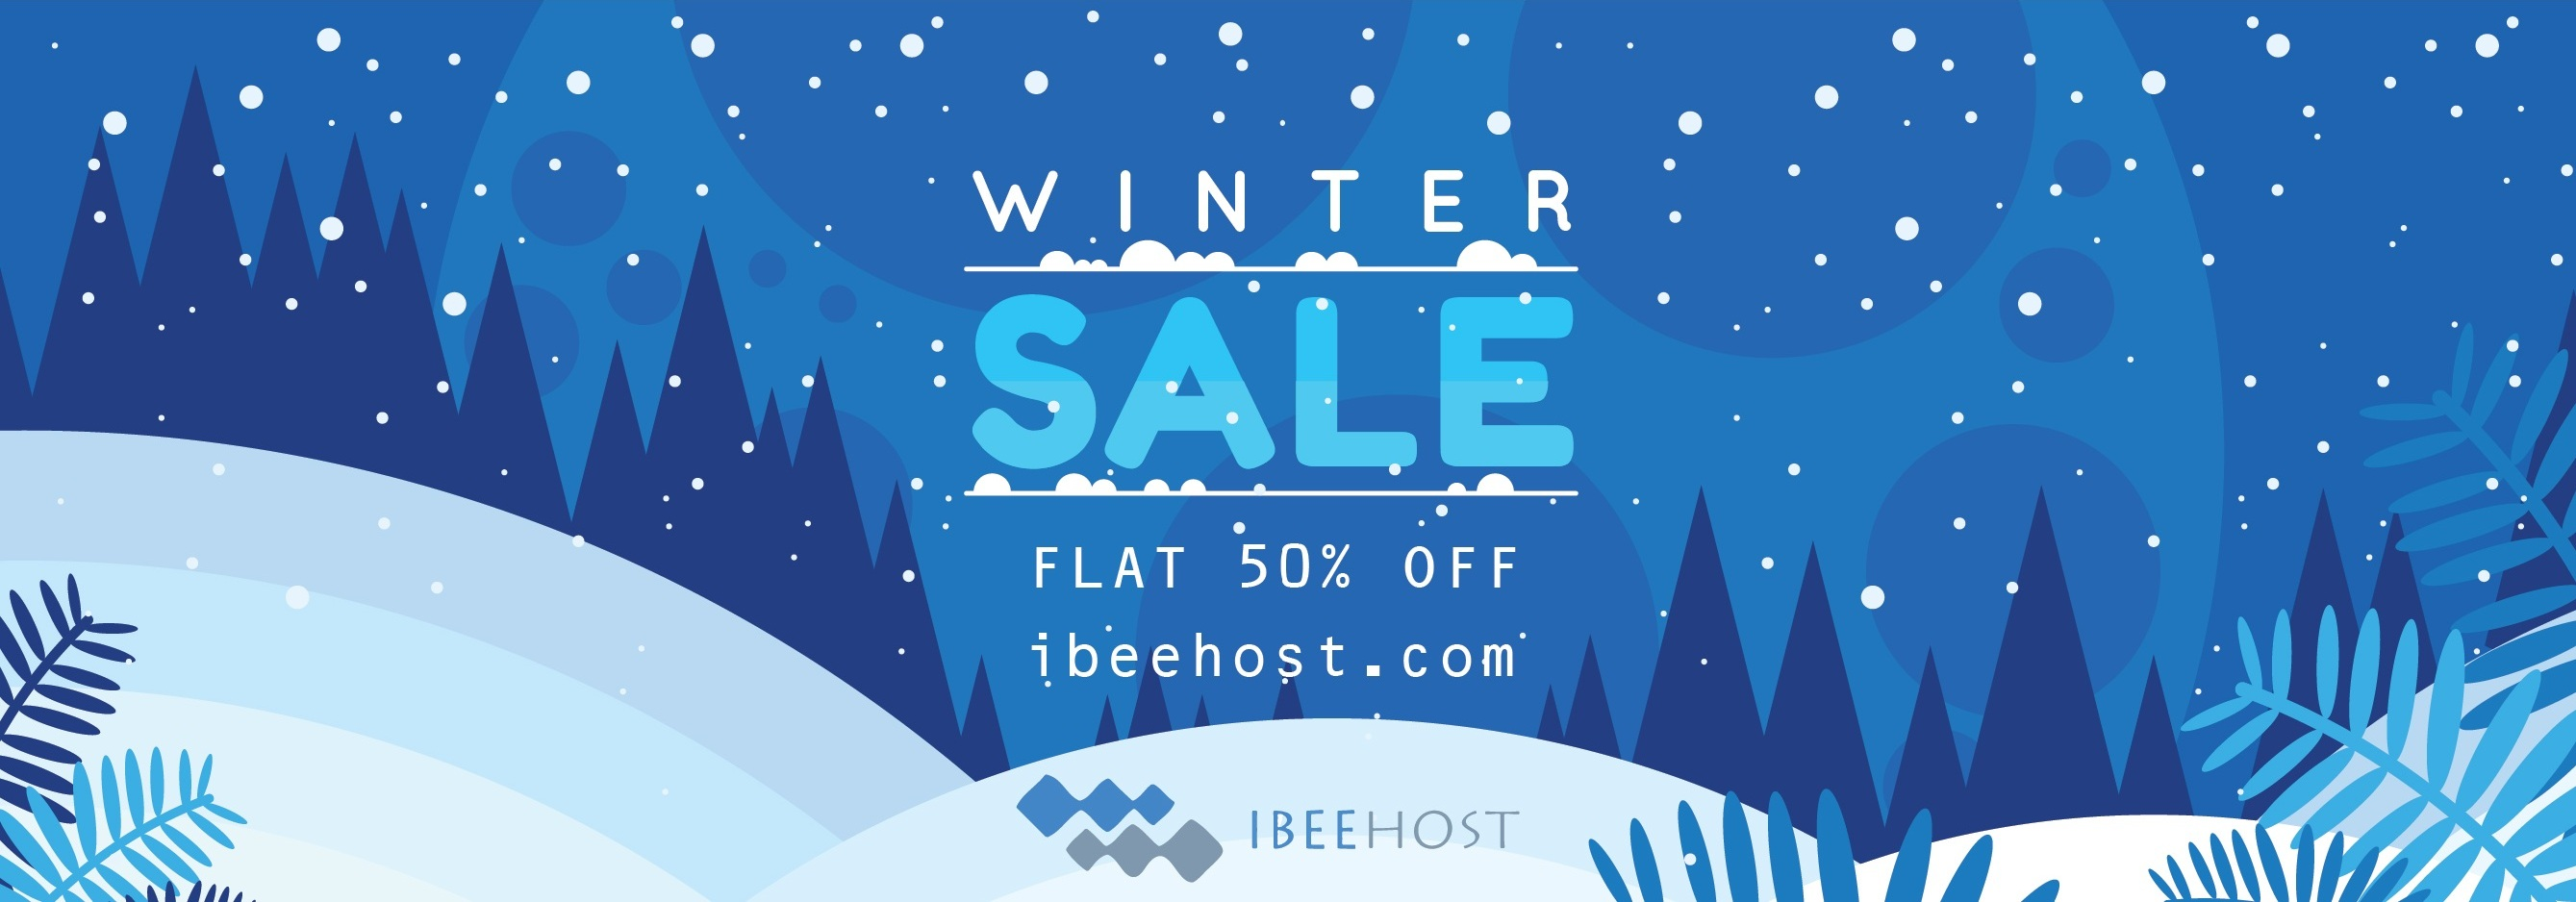 Winter Sale, Flat 50% OFF